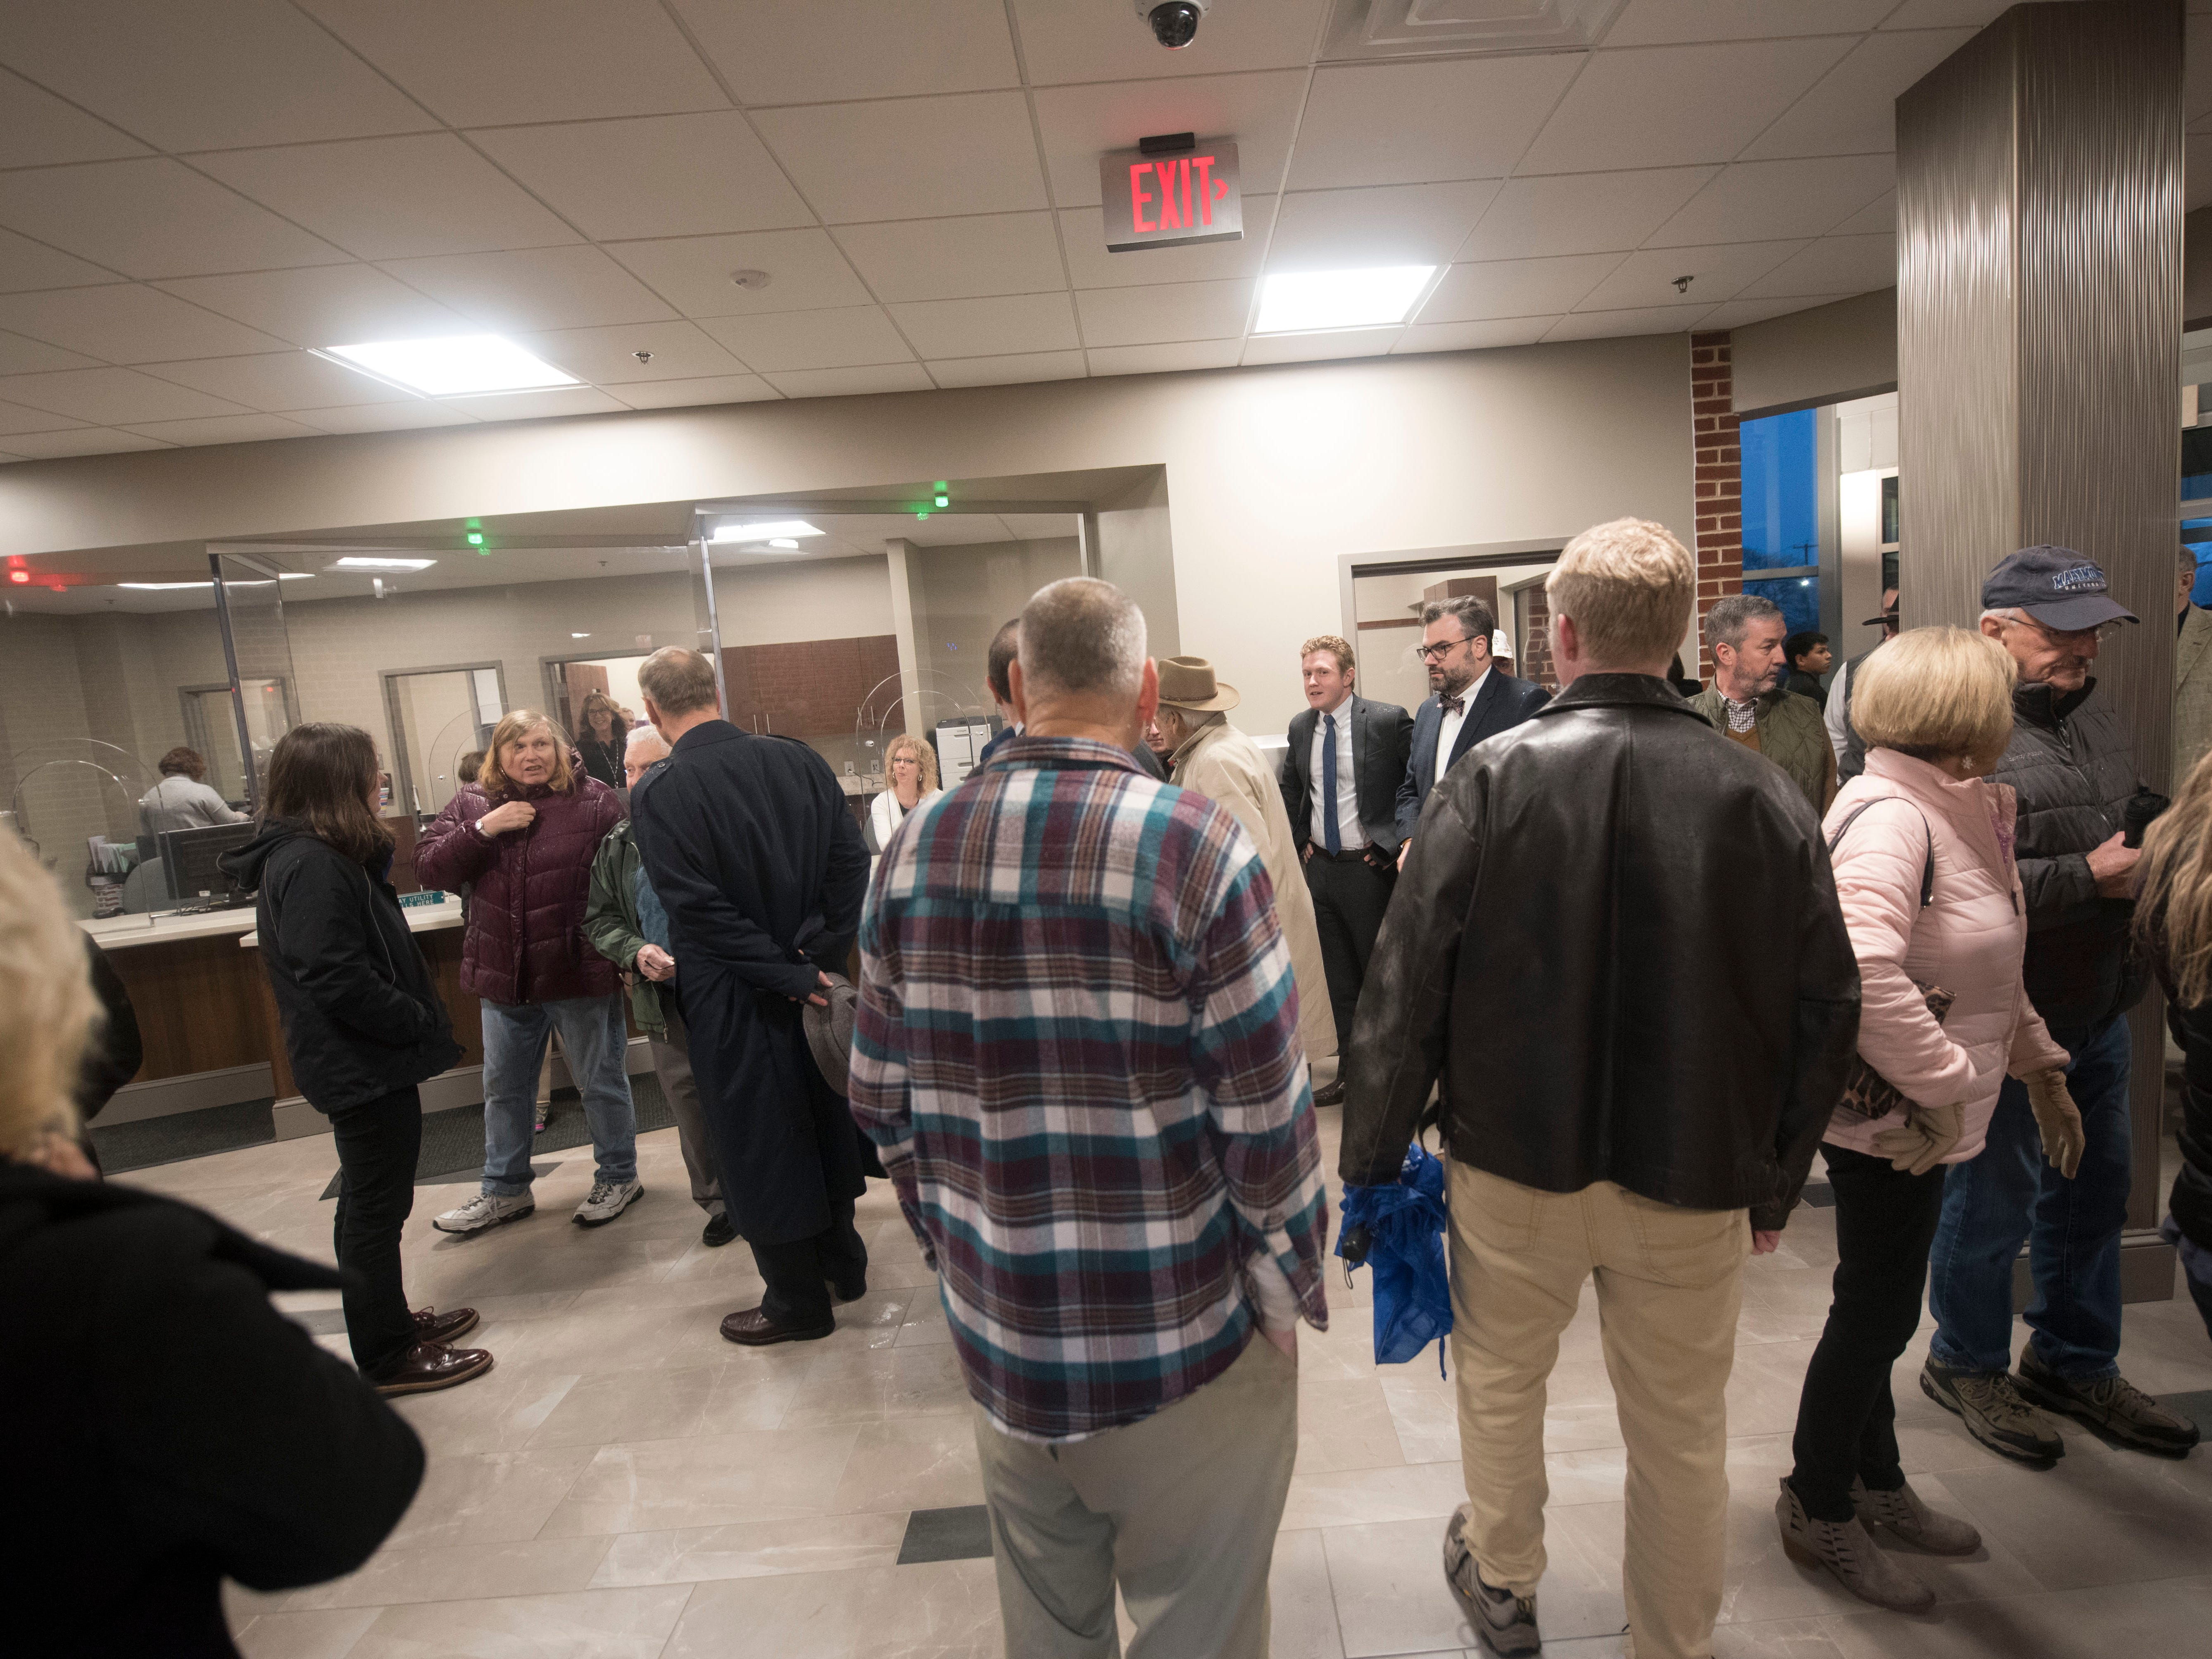 Former employees and others tour the new boro hall addition with others after a ribboncutting ceremony on Thursday, December 20, 2018.